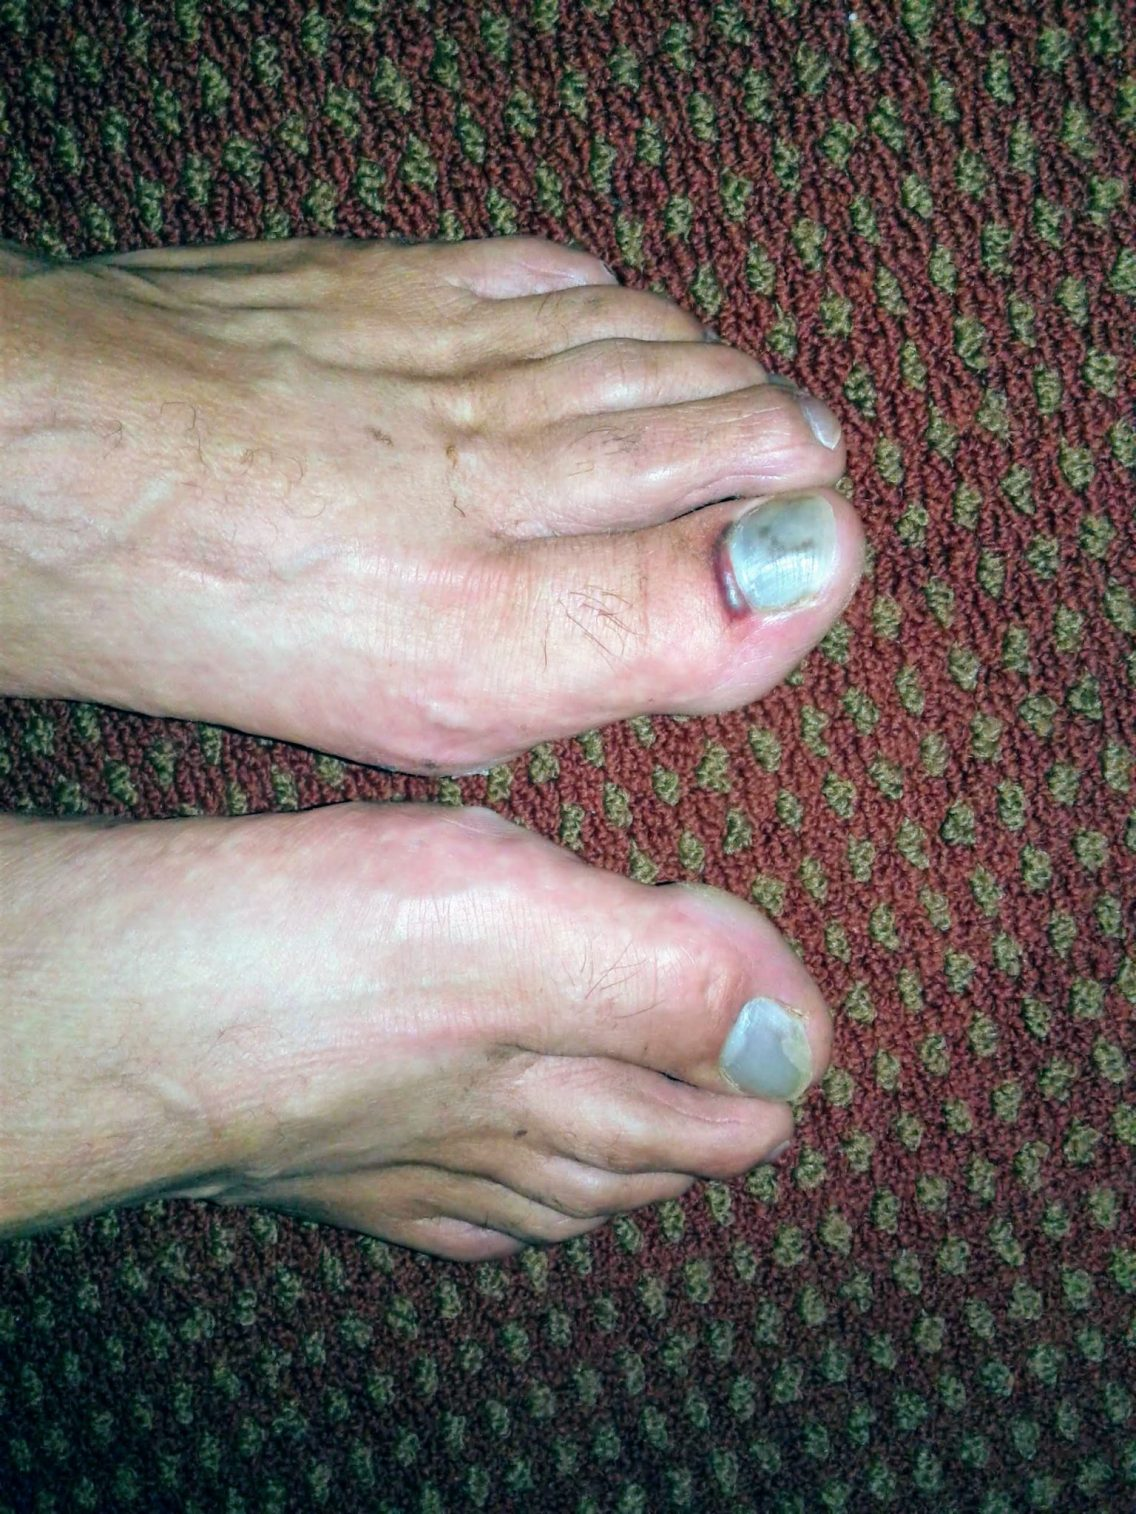 Image of man's feet with bruised toenails on big toes.